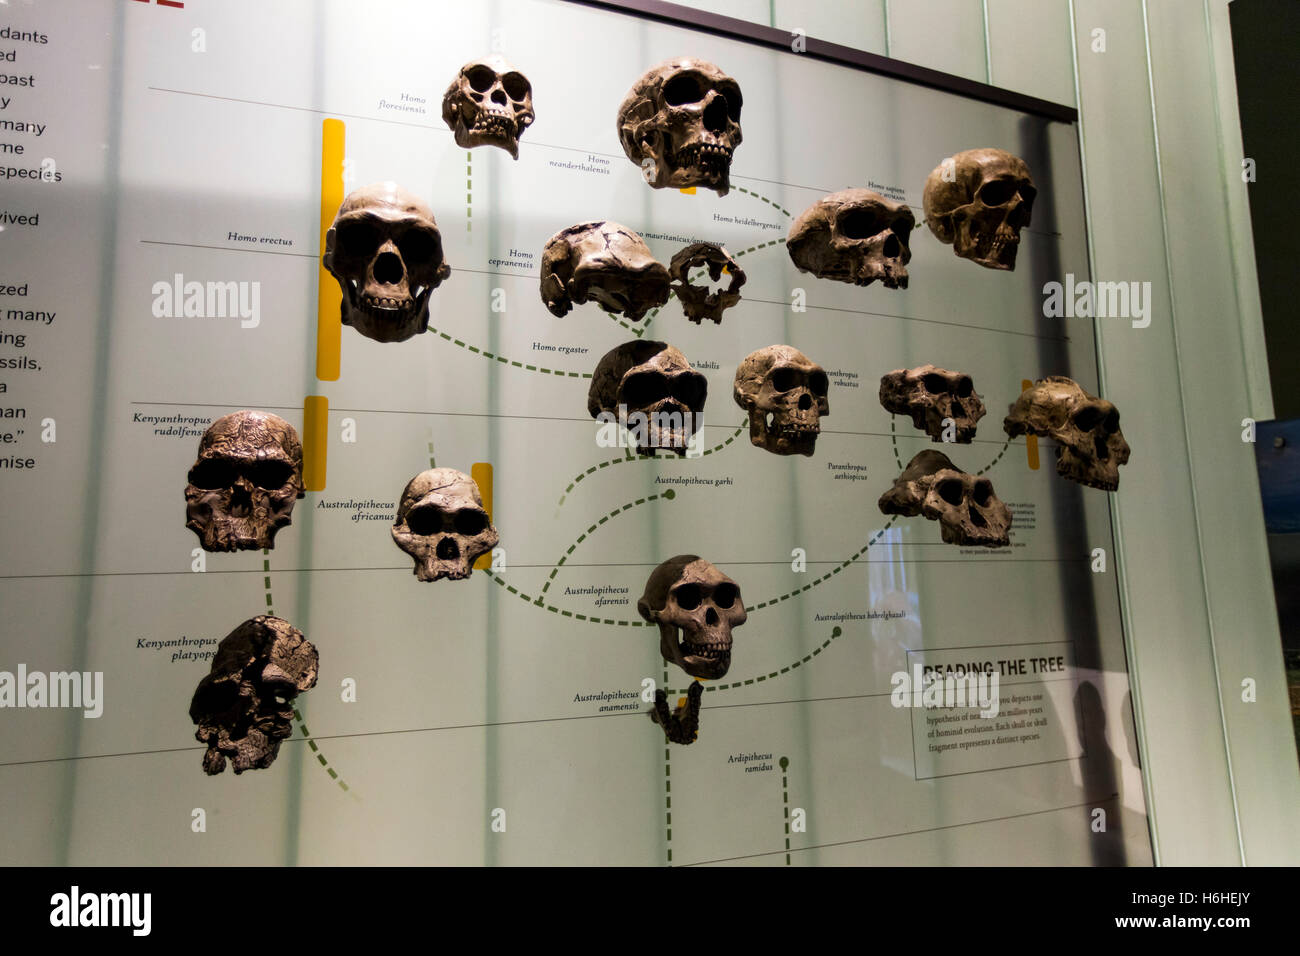 Home evolutions ny - New York Usa Nov 19 Display Showing Human Evolution Through Skulls In The American Museum Of Natural History On November 19